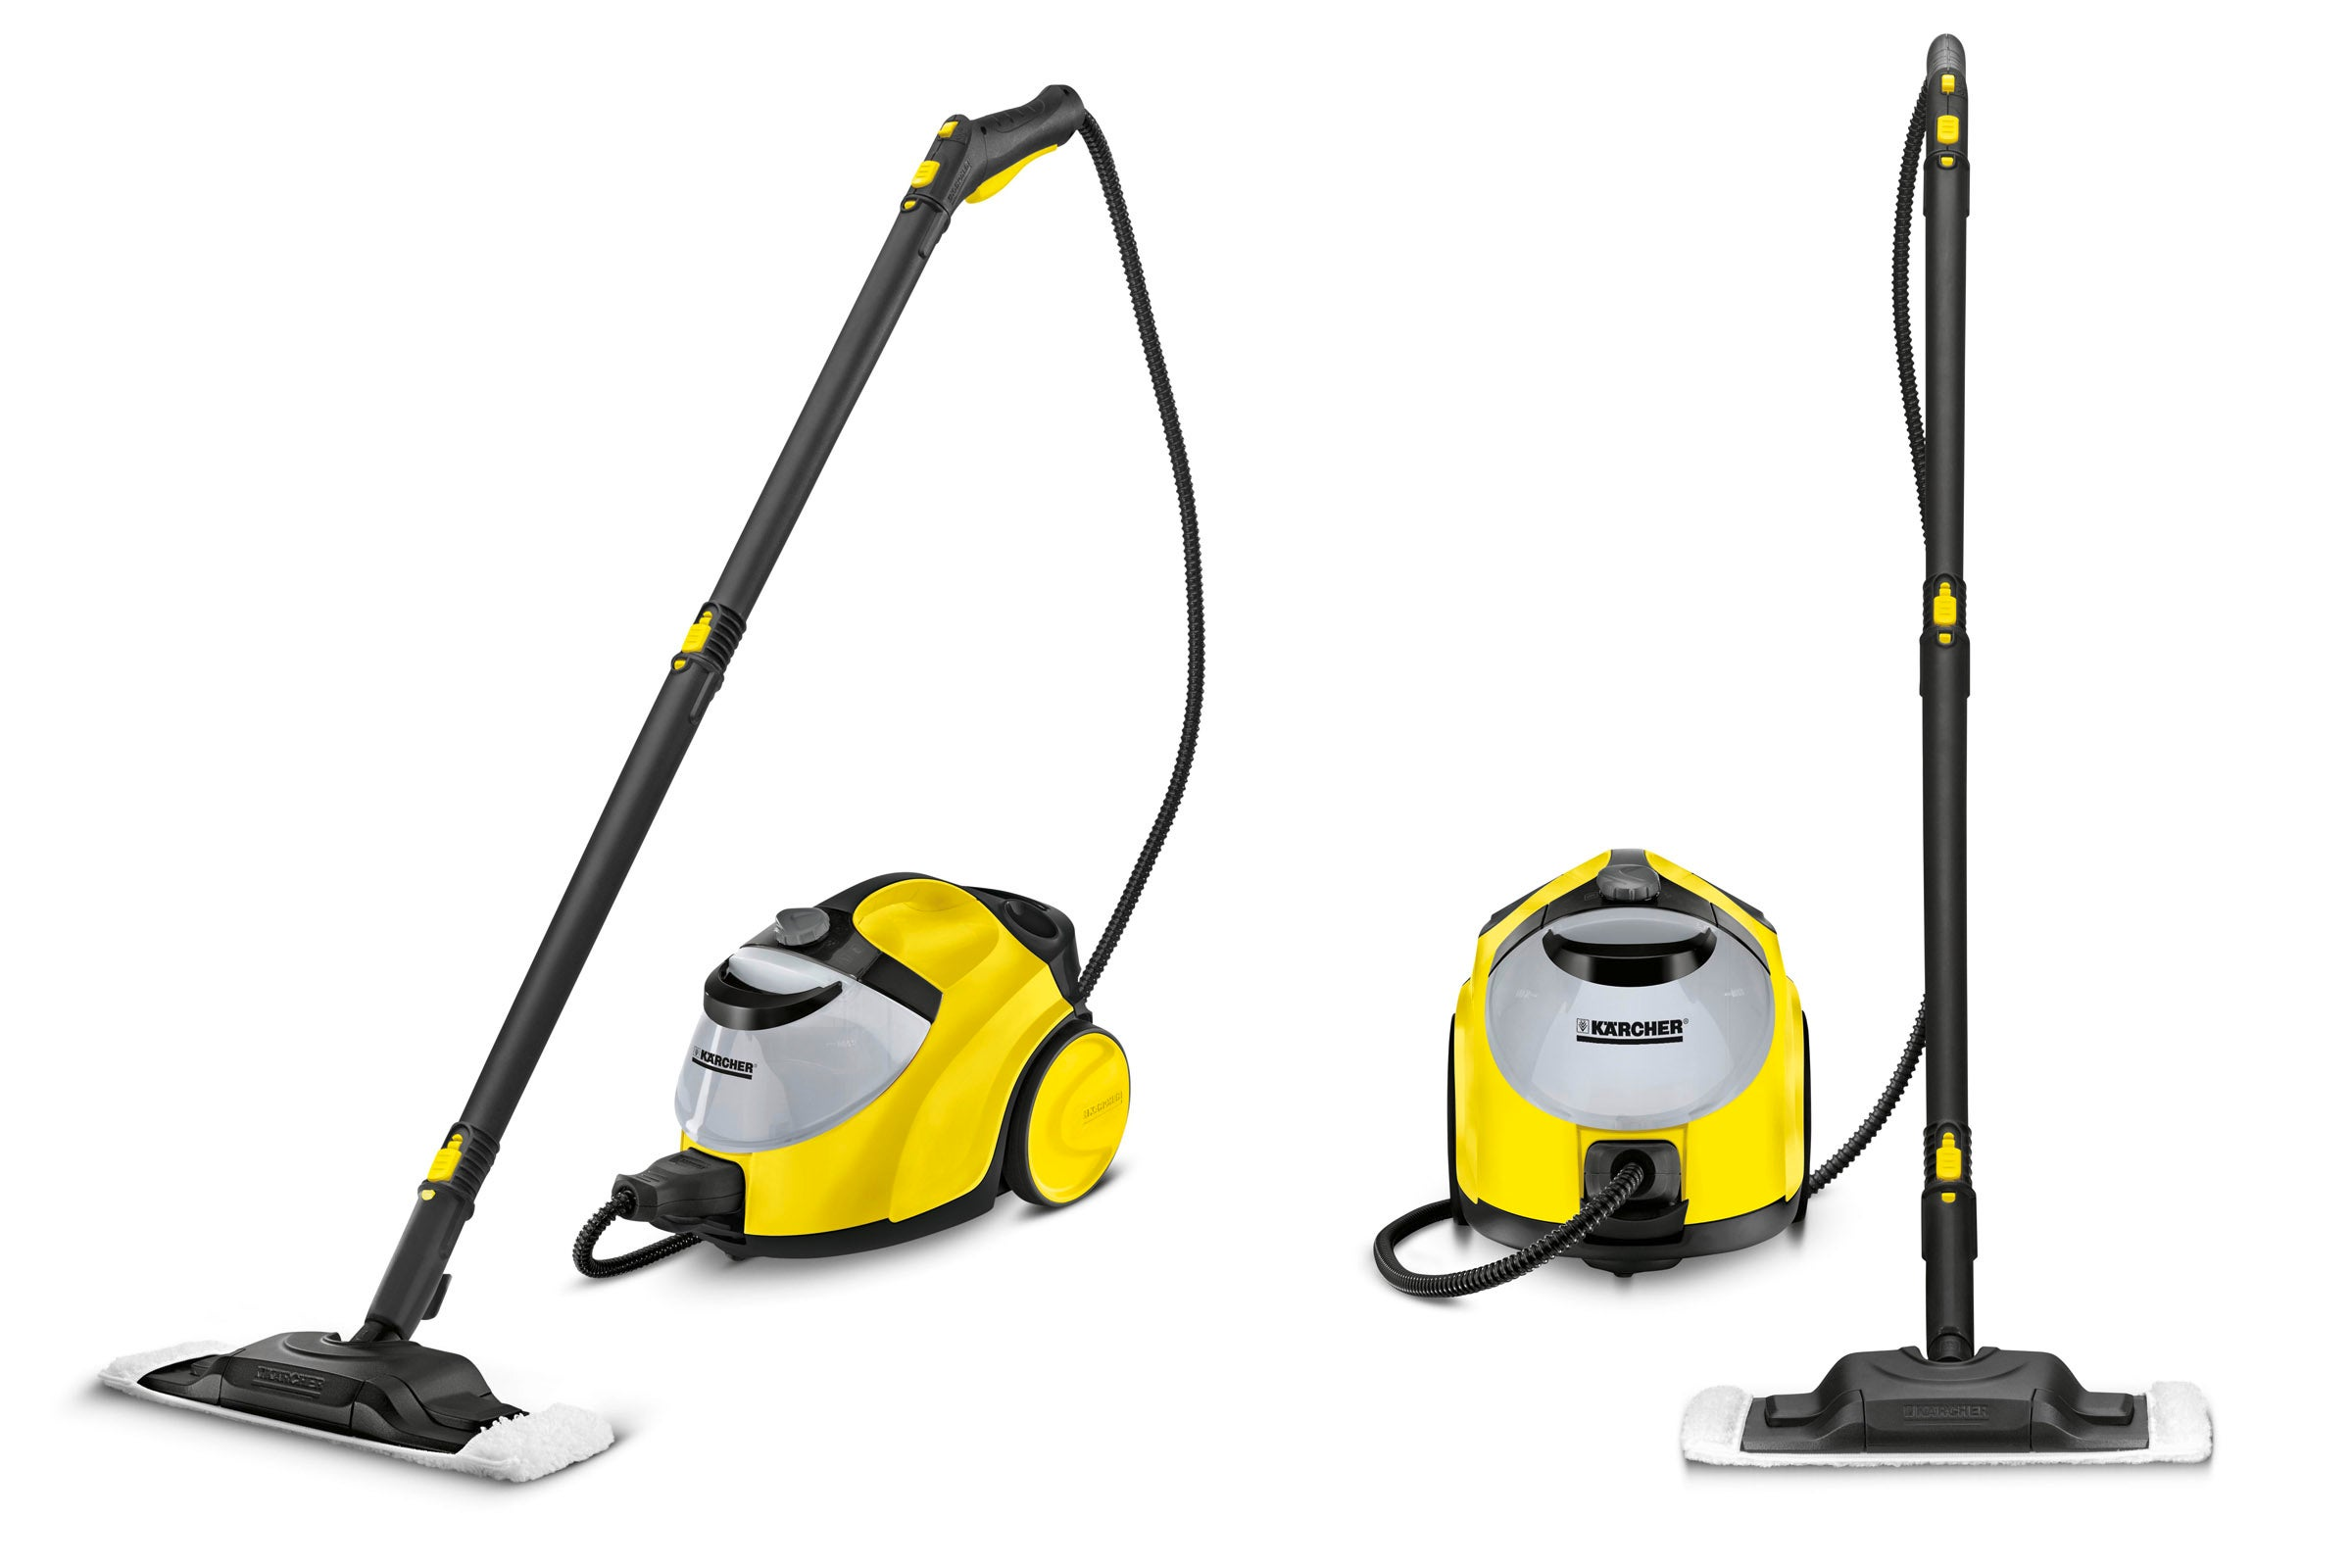 Aldi is selling the Karcher vacuum for